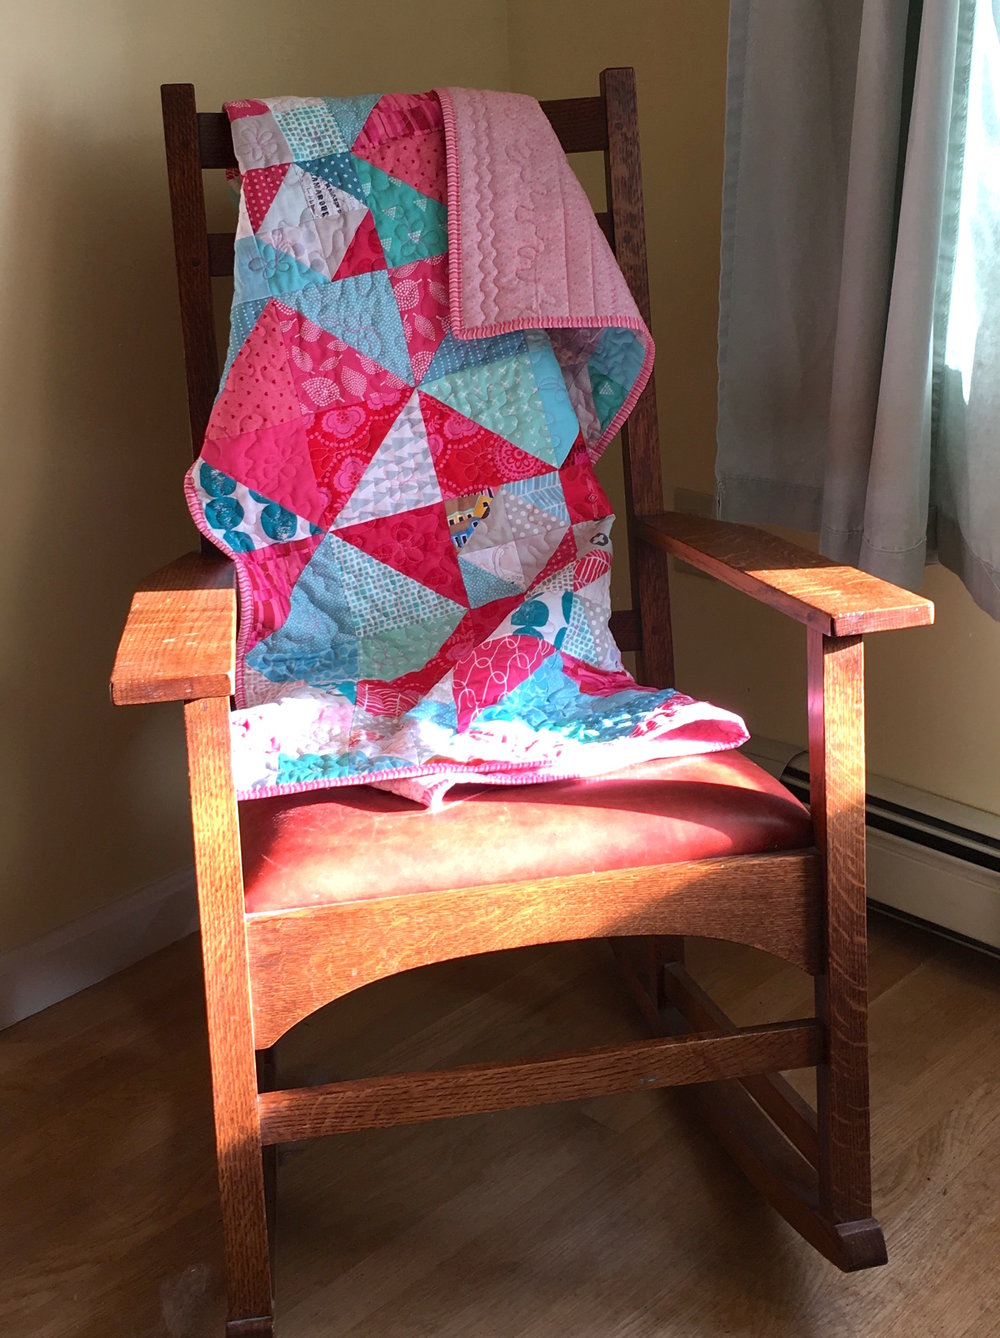 Quilt Pink and Aqua in chair.jpg